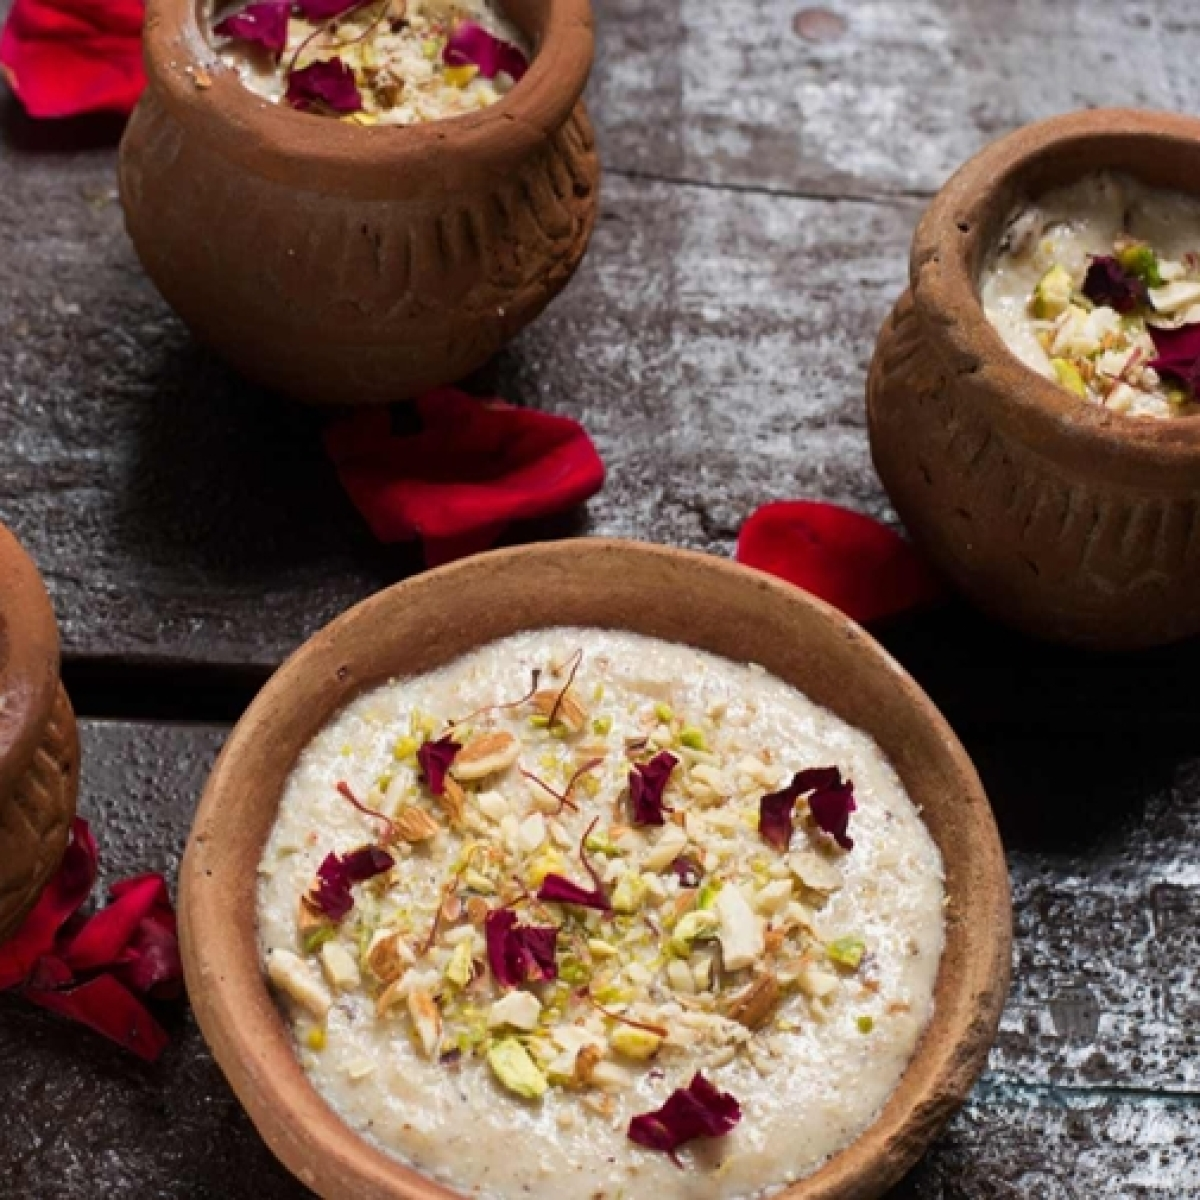 Maha Shivratri 2020: Vrat food, recipes - what you can eat while fasting